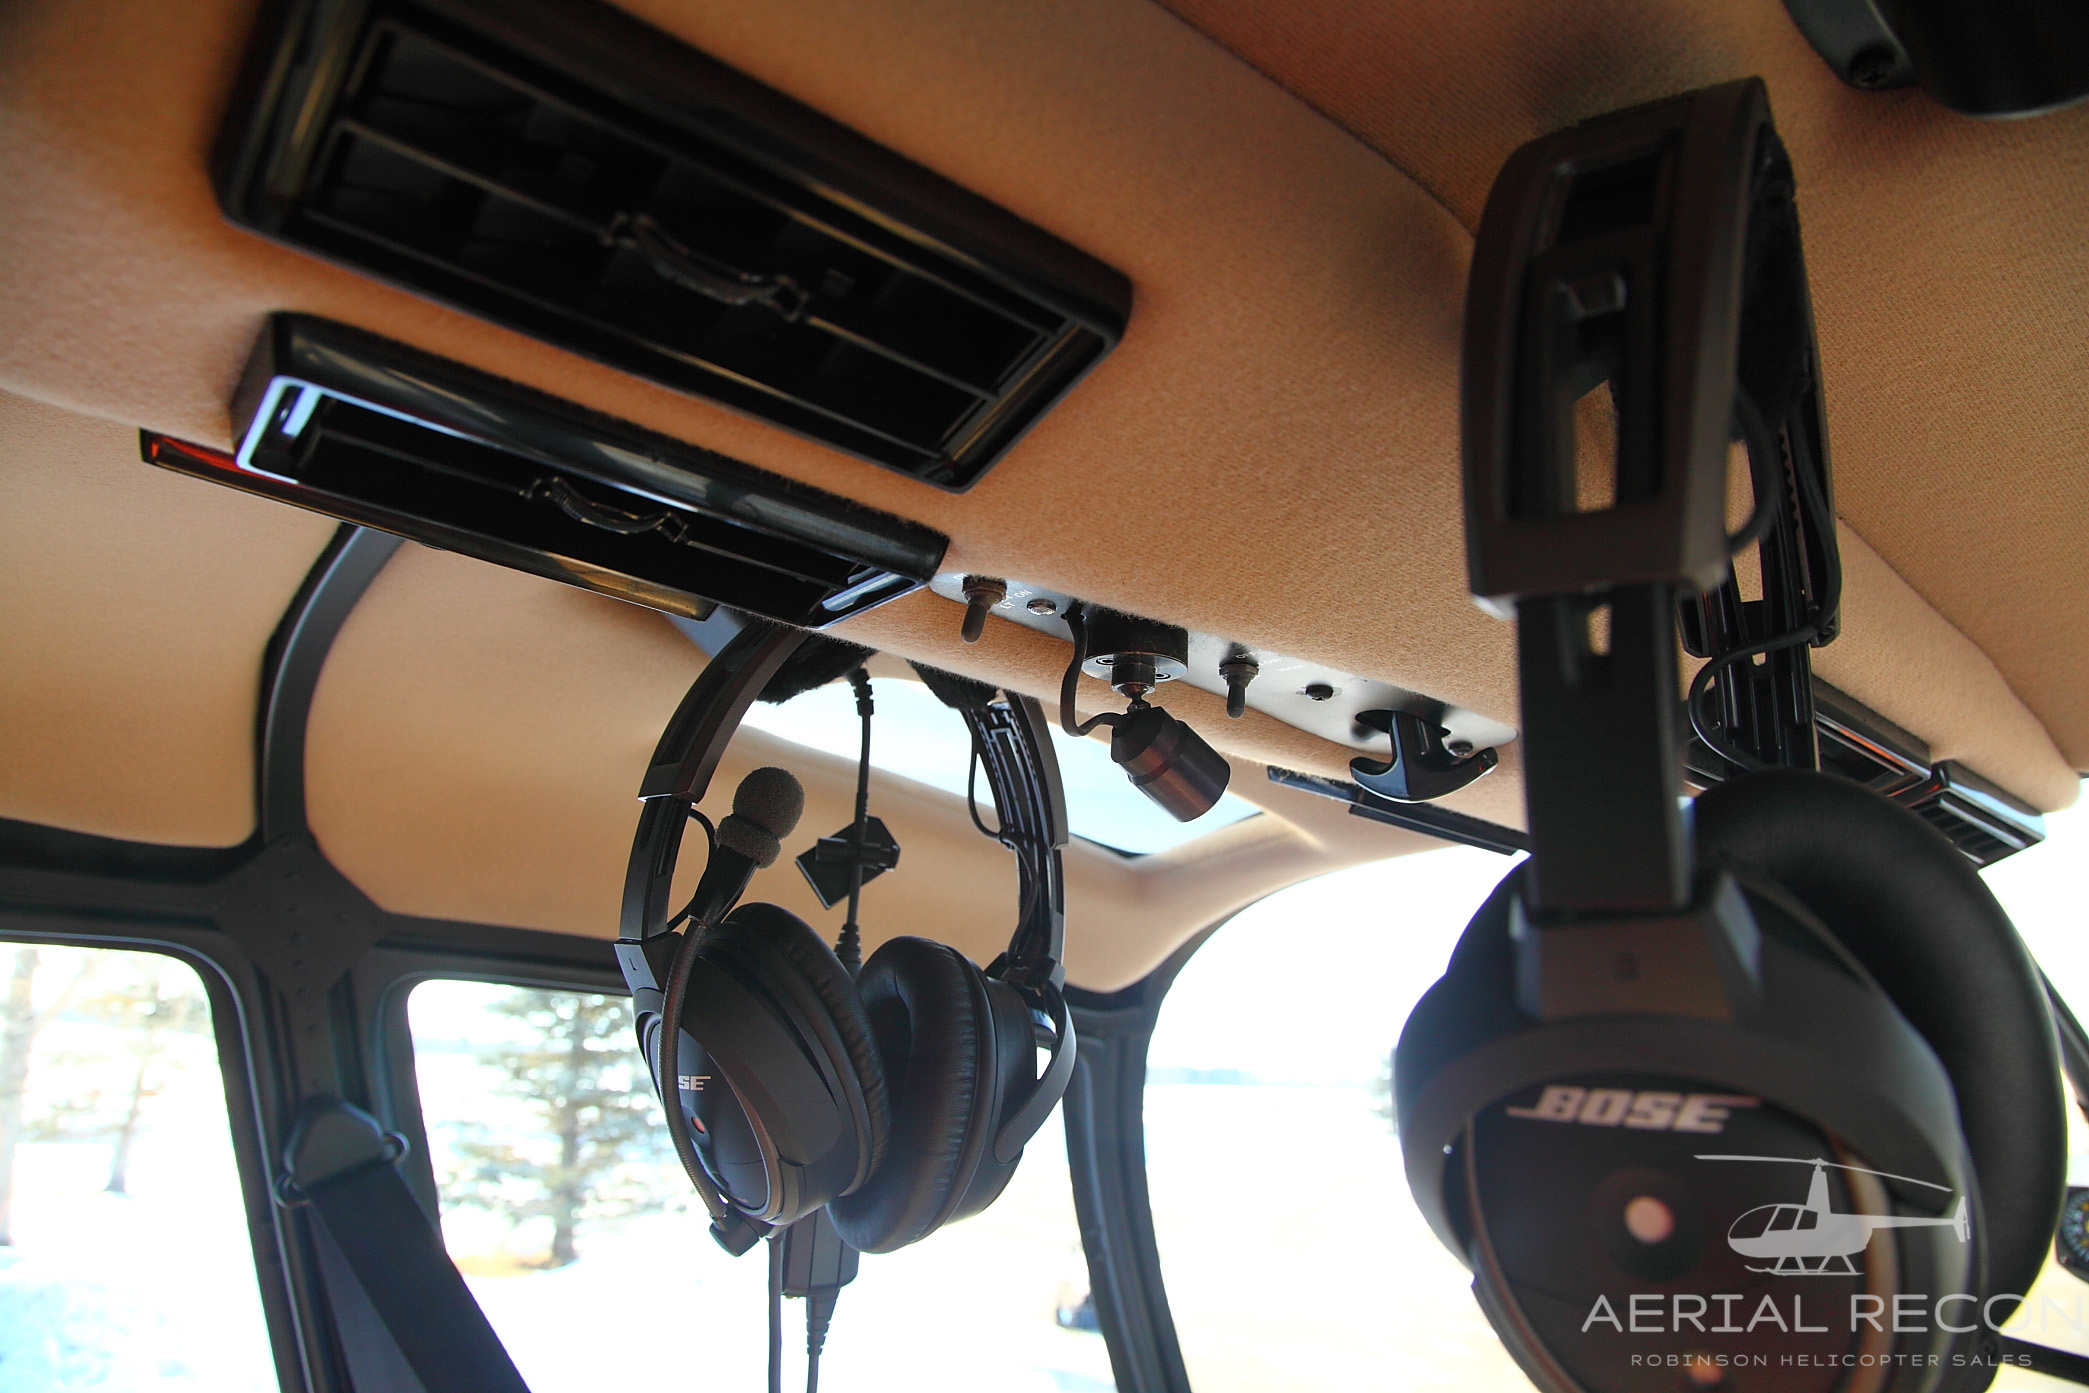 Circuitbreakerpaneljpg R66 C Gwpv Aerial Recon Ltd Robinson Helicopter Dealer Overview